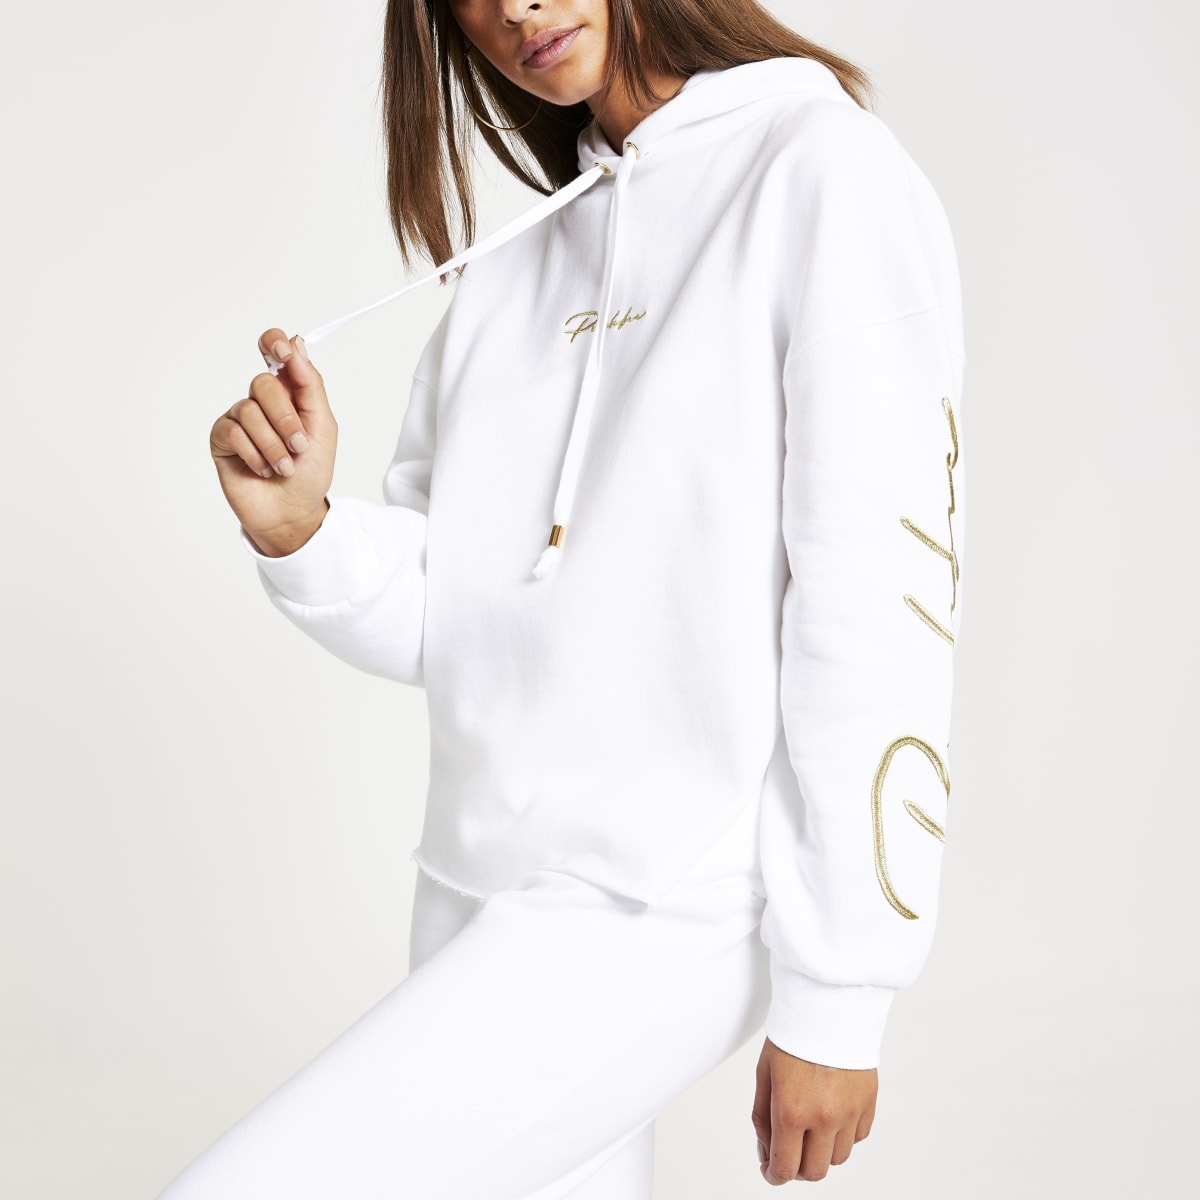 White 'Prolific' embroidered hoodie